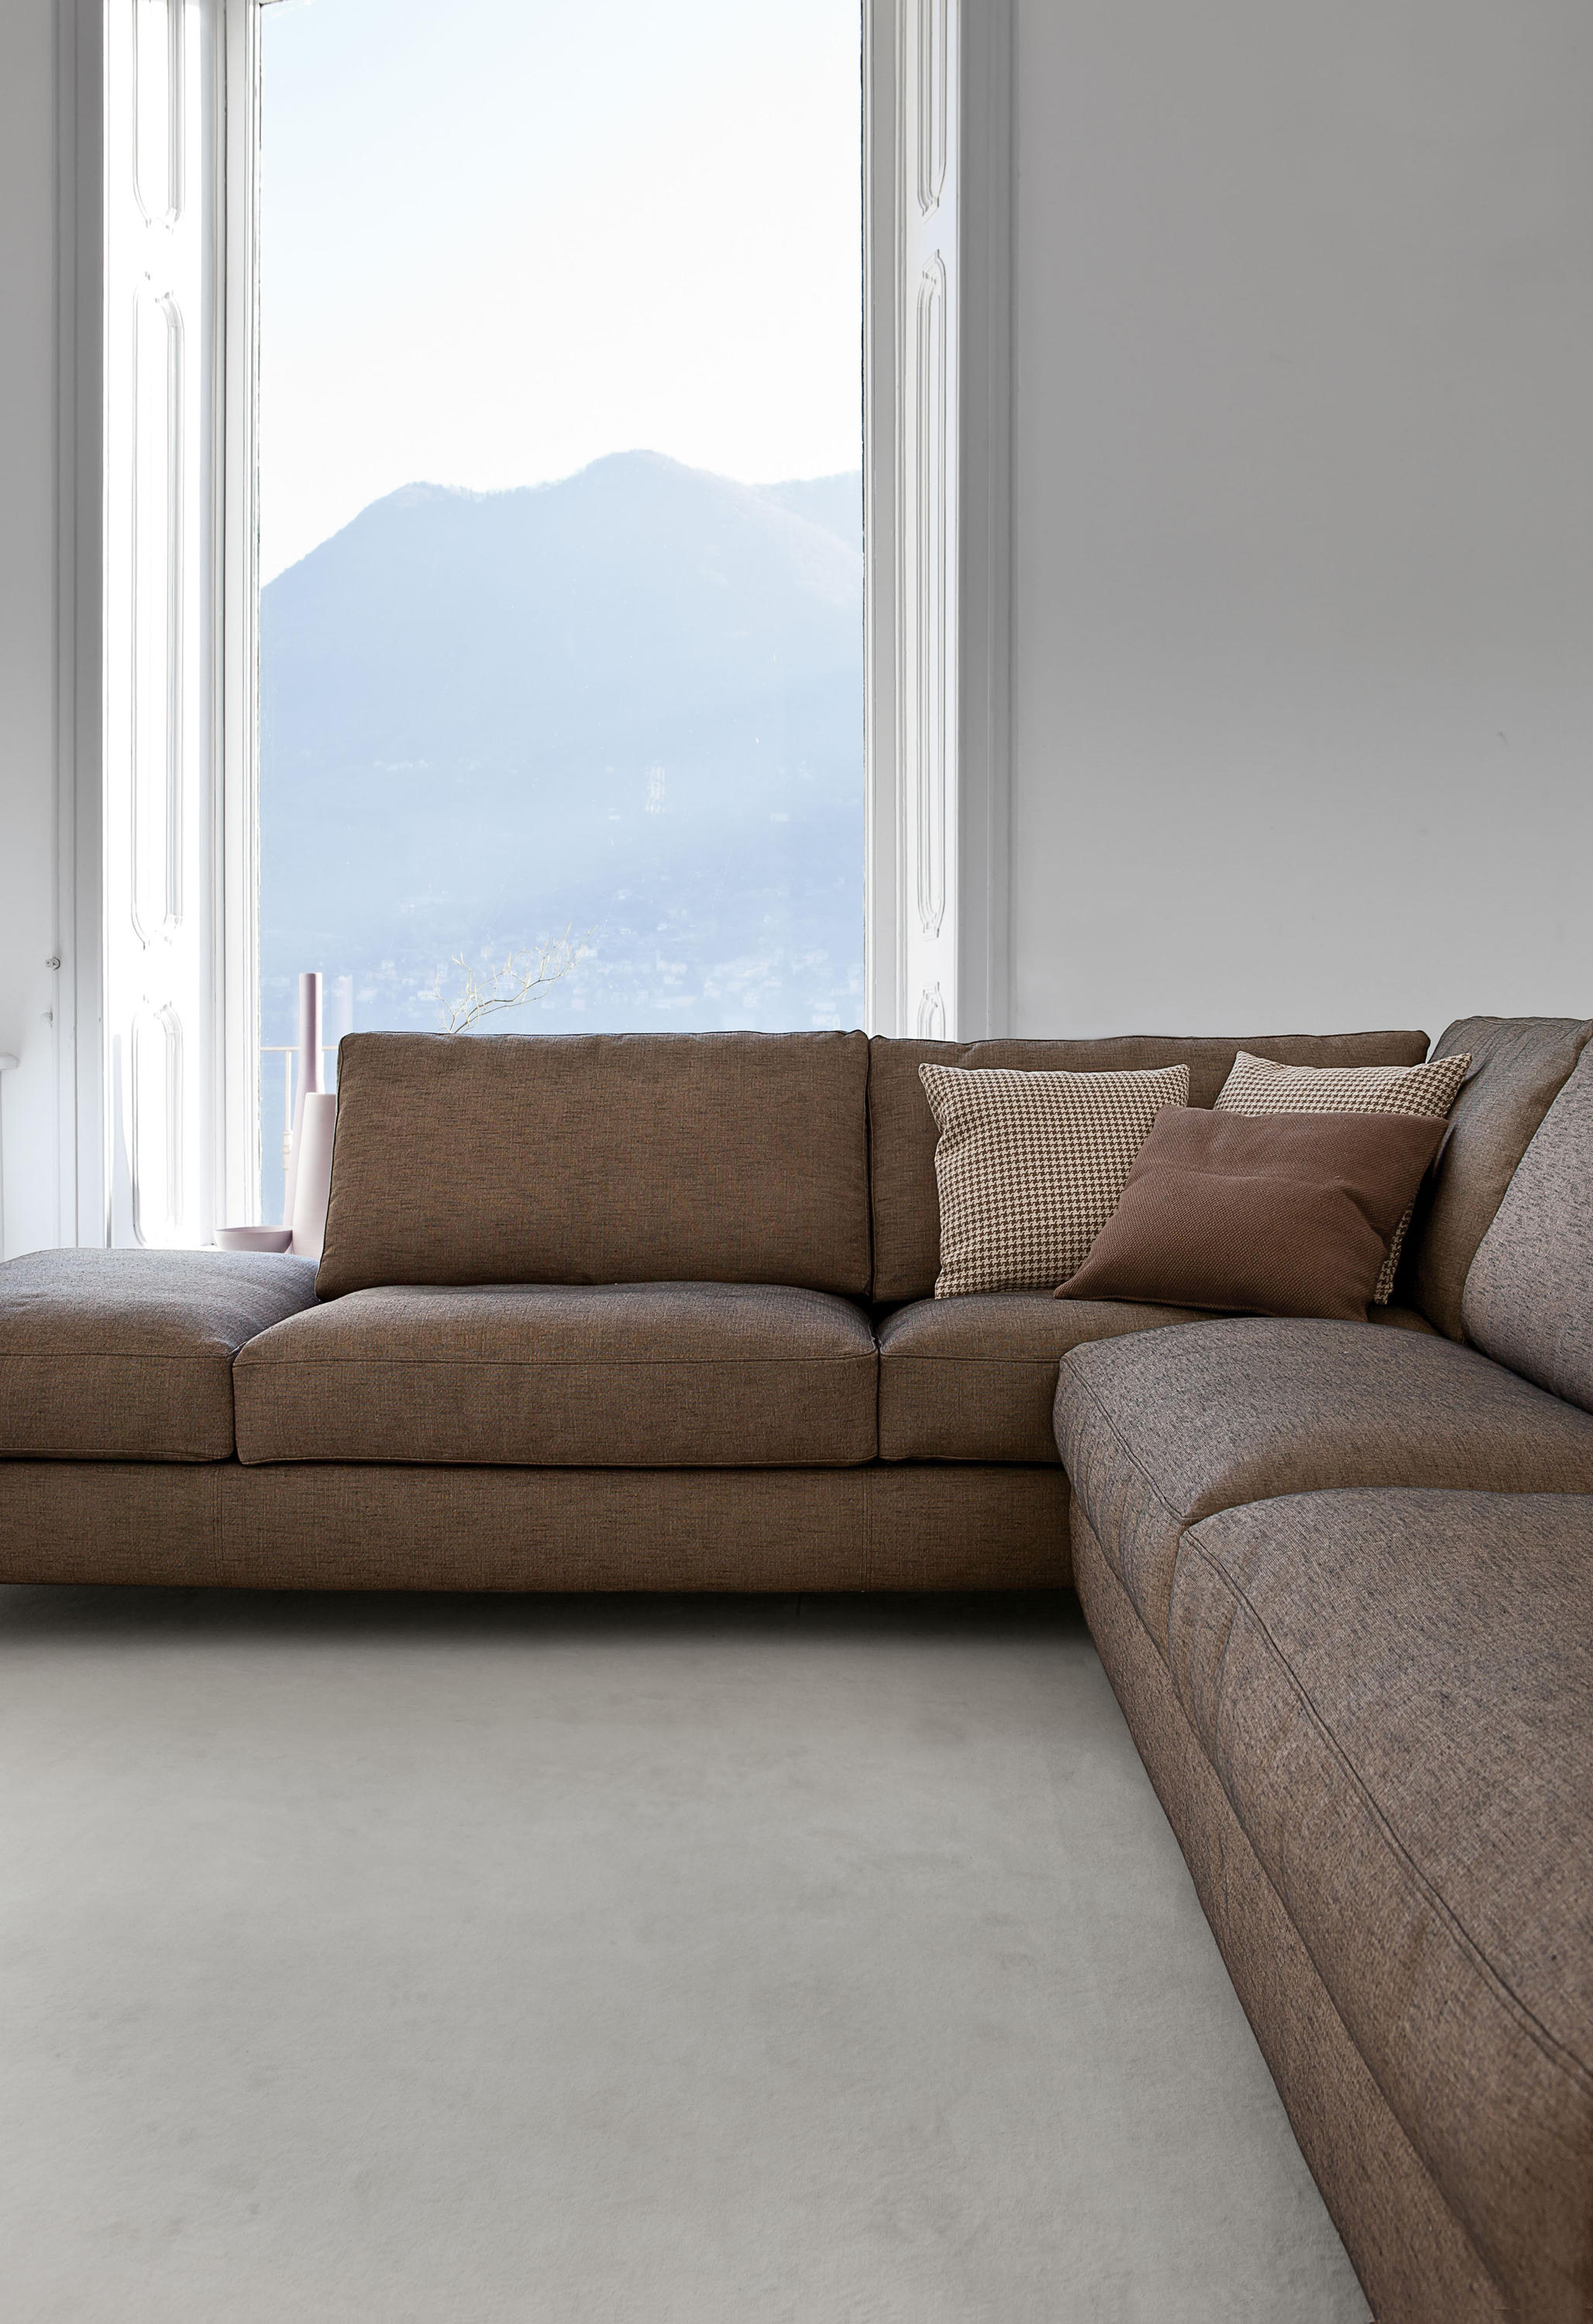 ZONE 940 FORT XL SOFA Modular sofa systems from Vibieffe